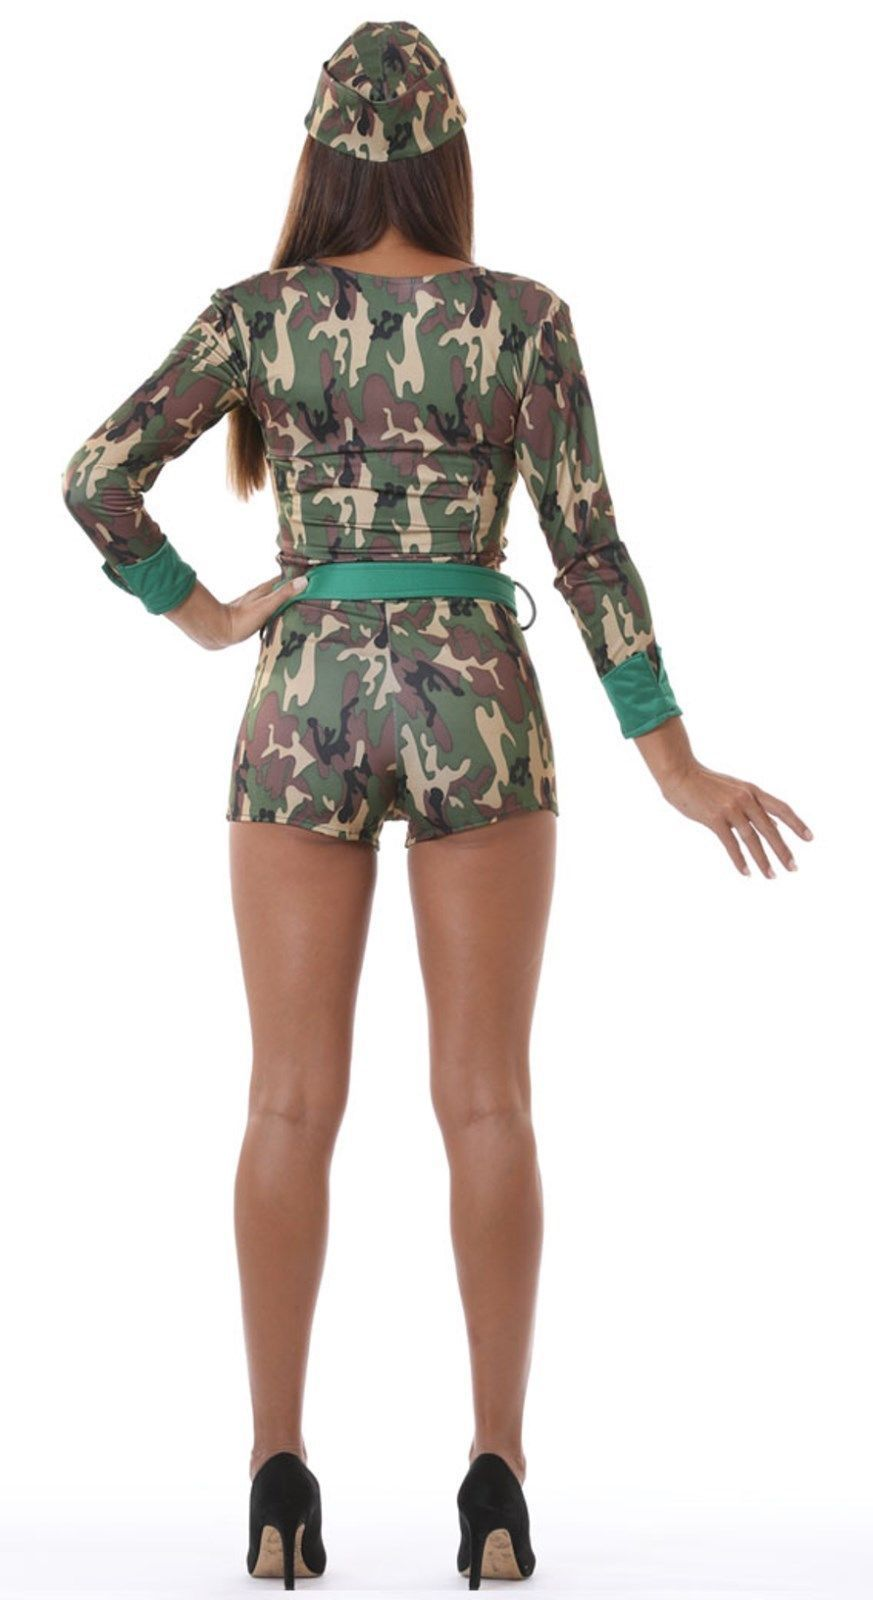 Ladies Commando Girl Soldier Fancy Dress Costume Back